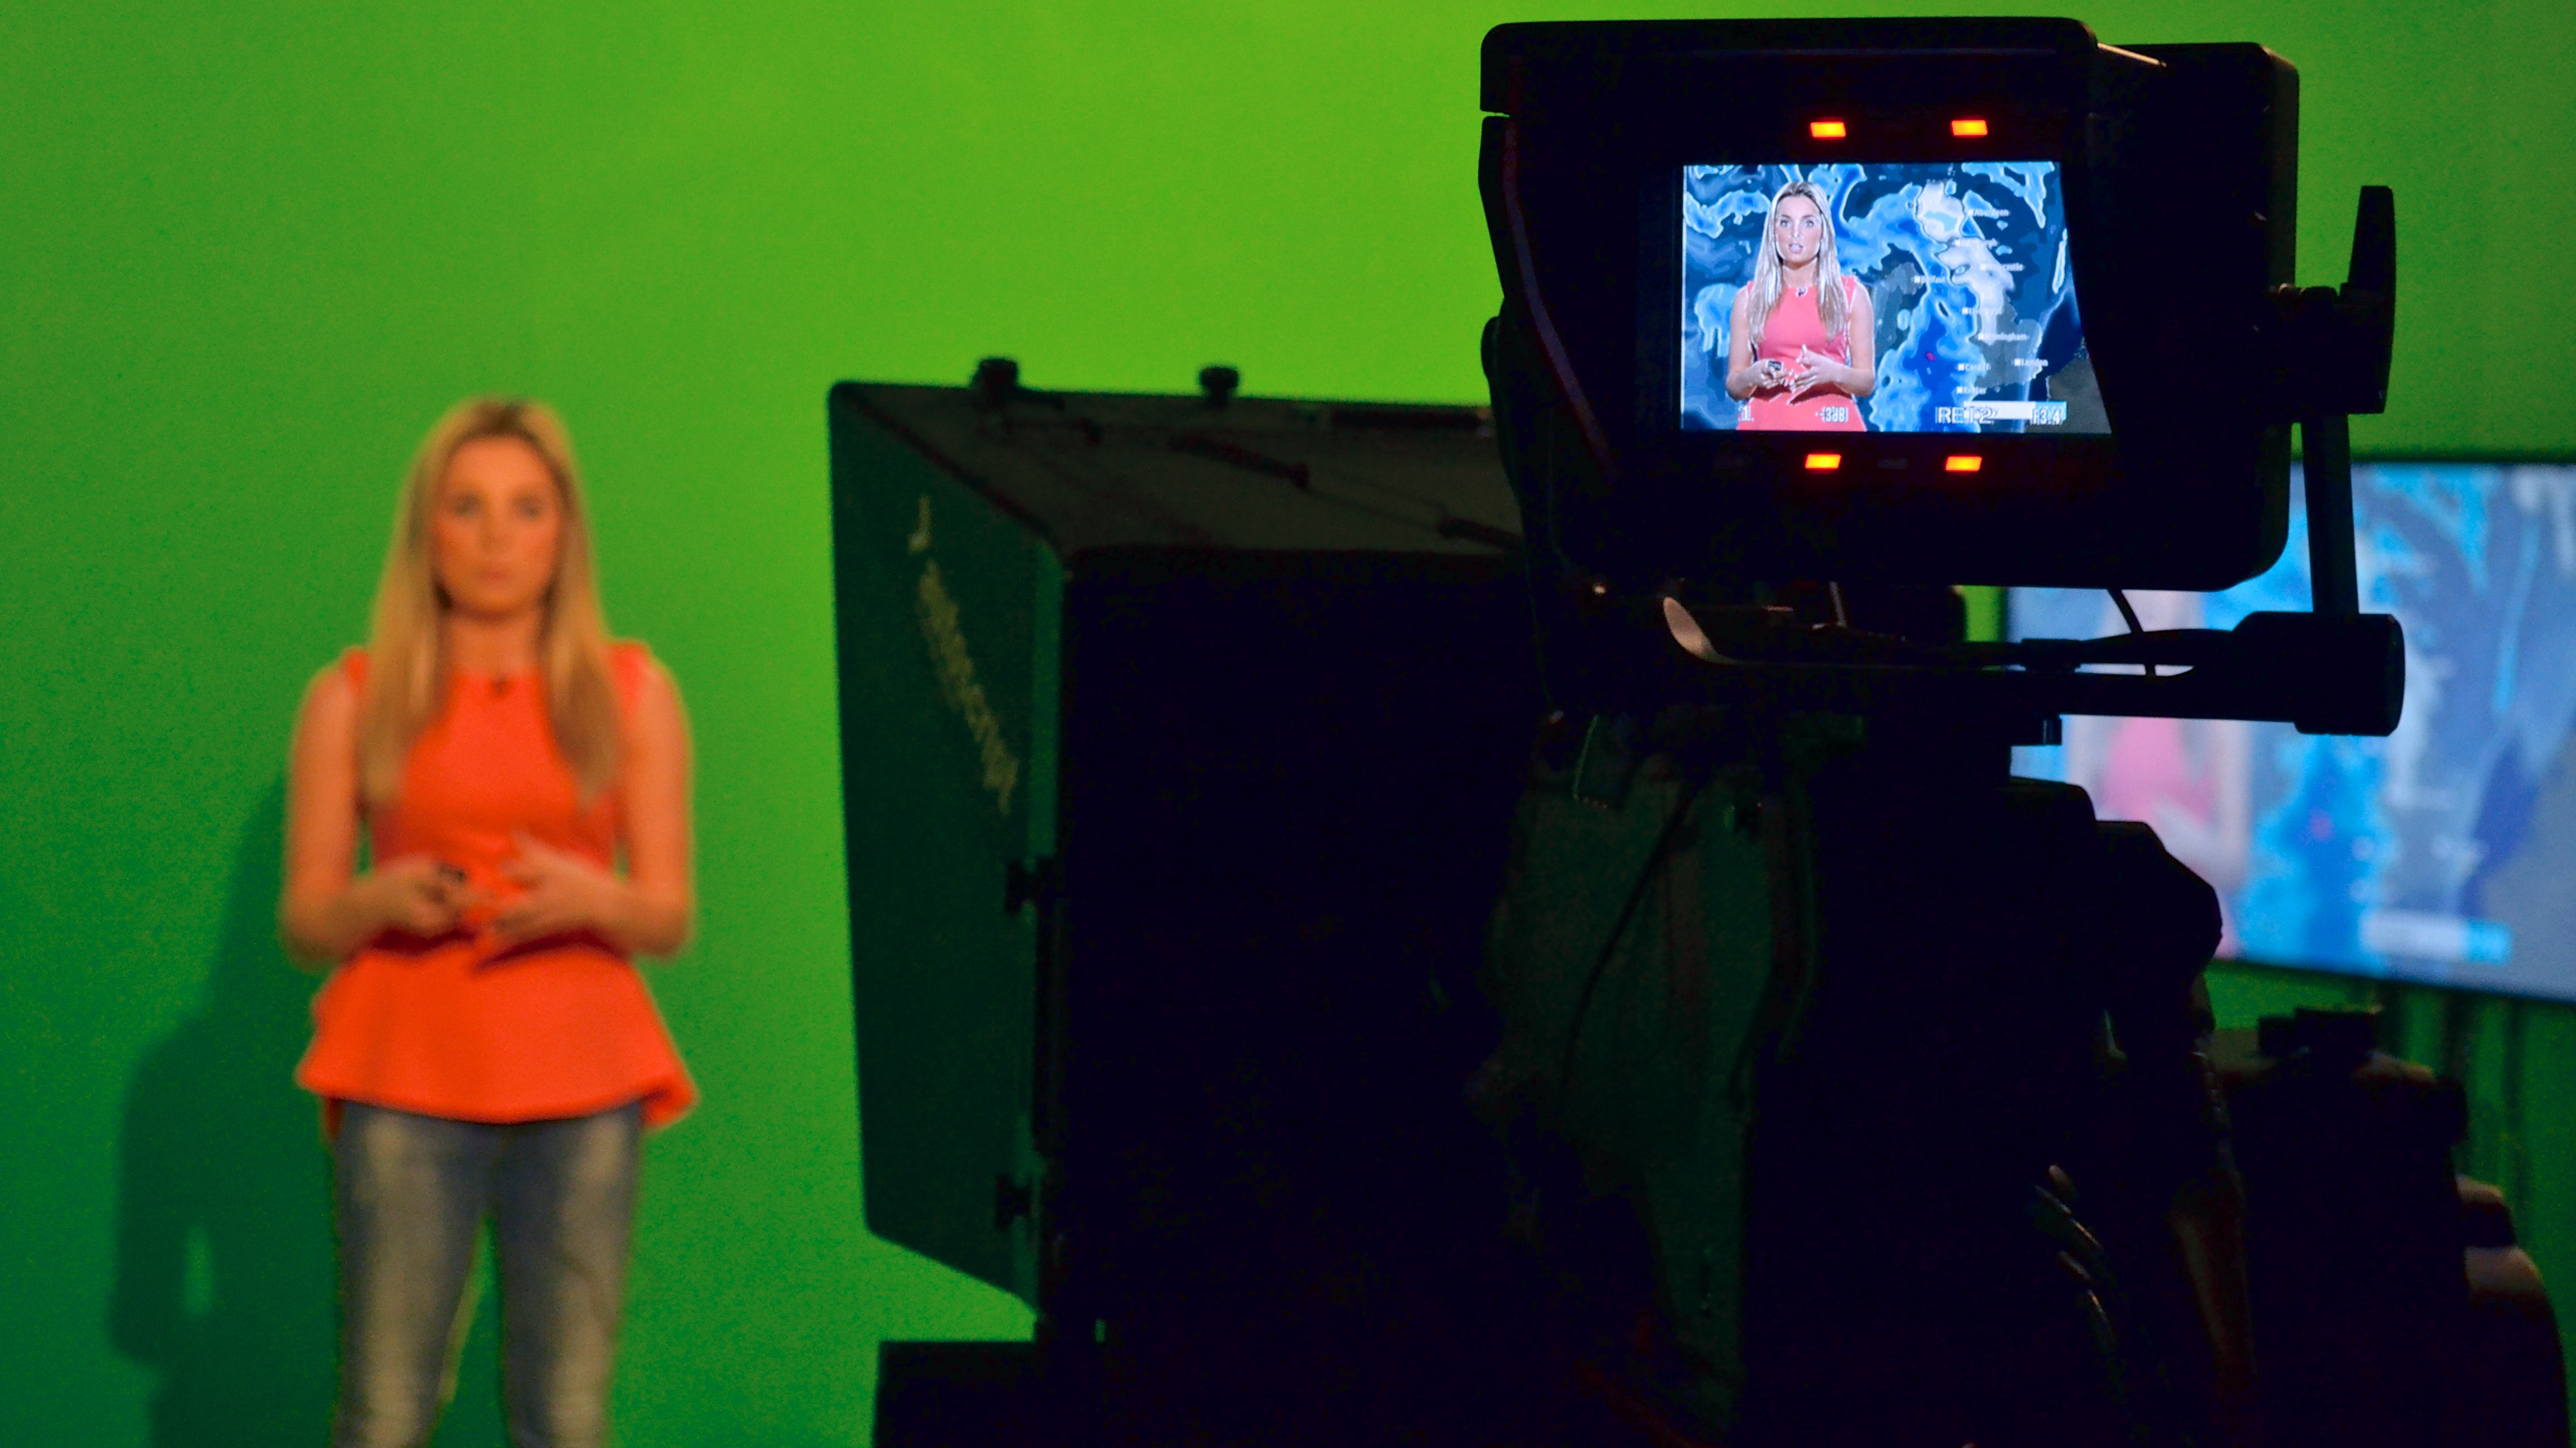 Sian Welby Weather Presenter